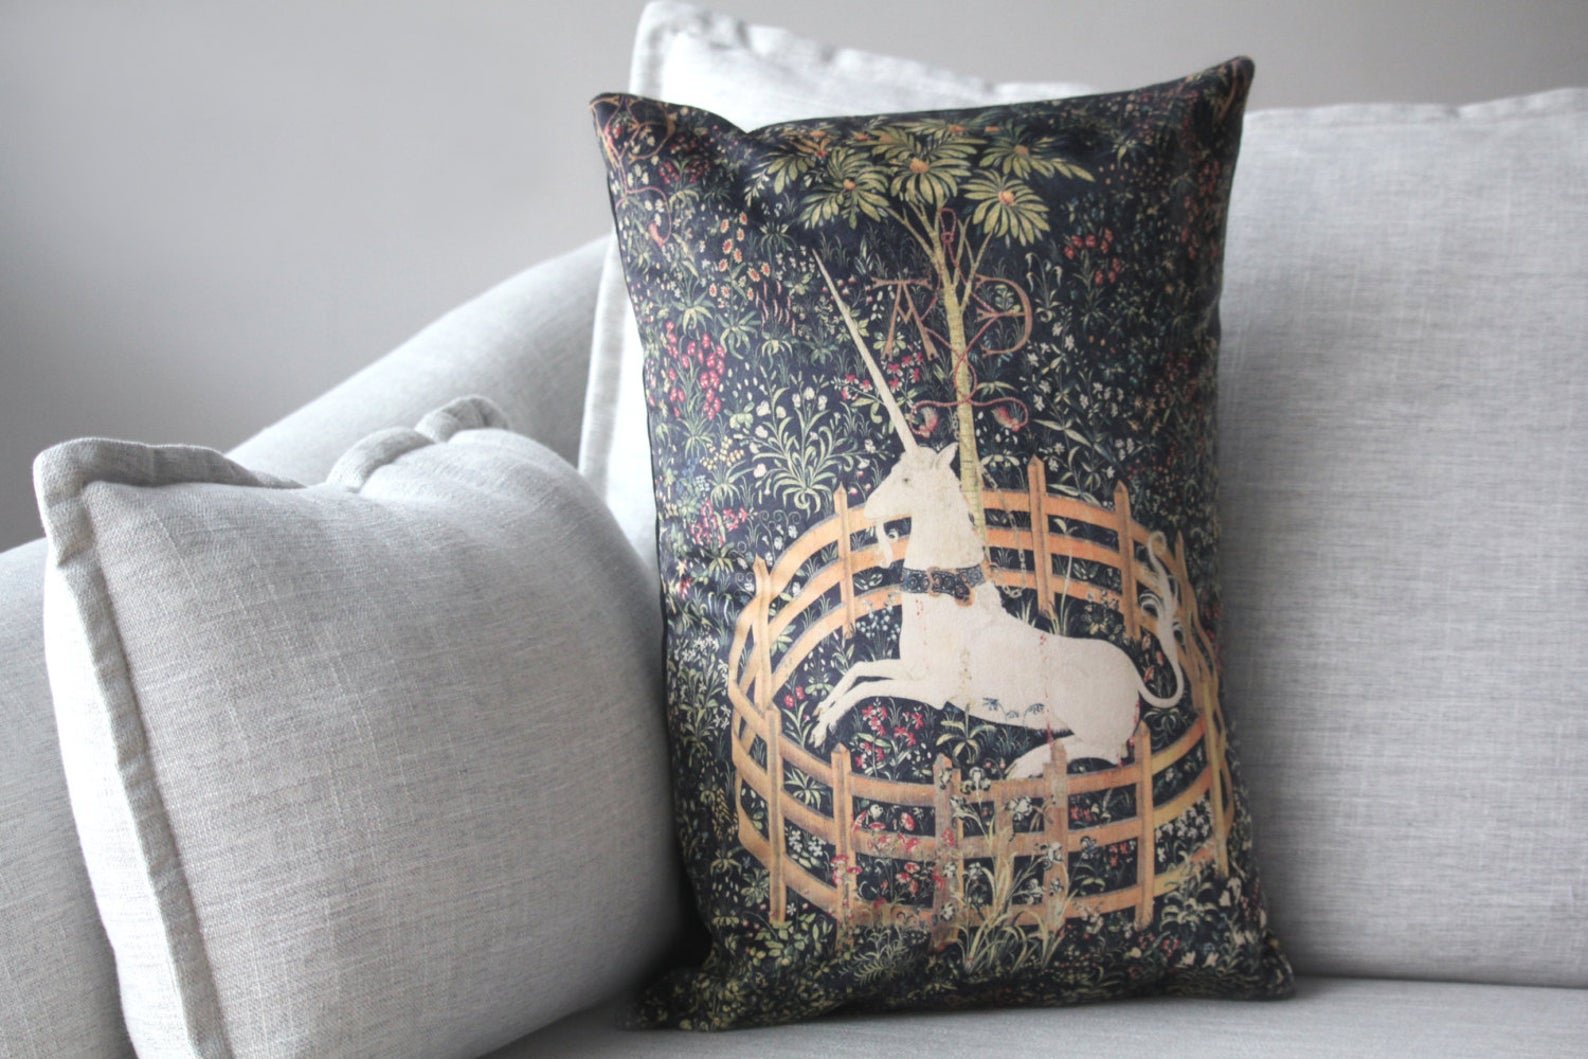 "the unicorn is in captivity and no longer dead - 14"" x 20"" velveteen pillow case - unicorn tapestries, 1495 - 1505"